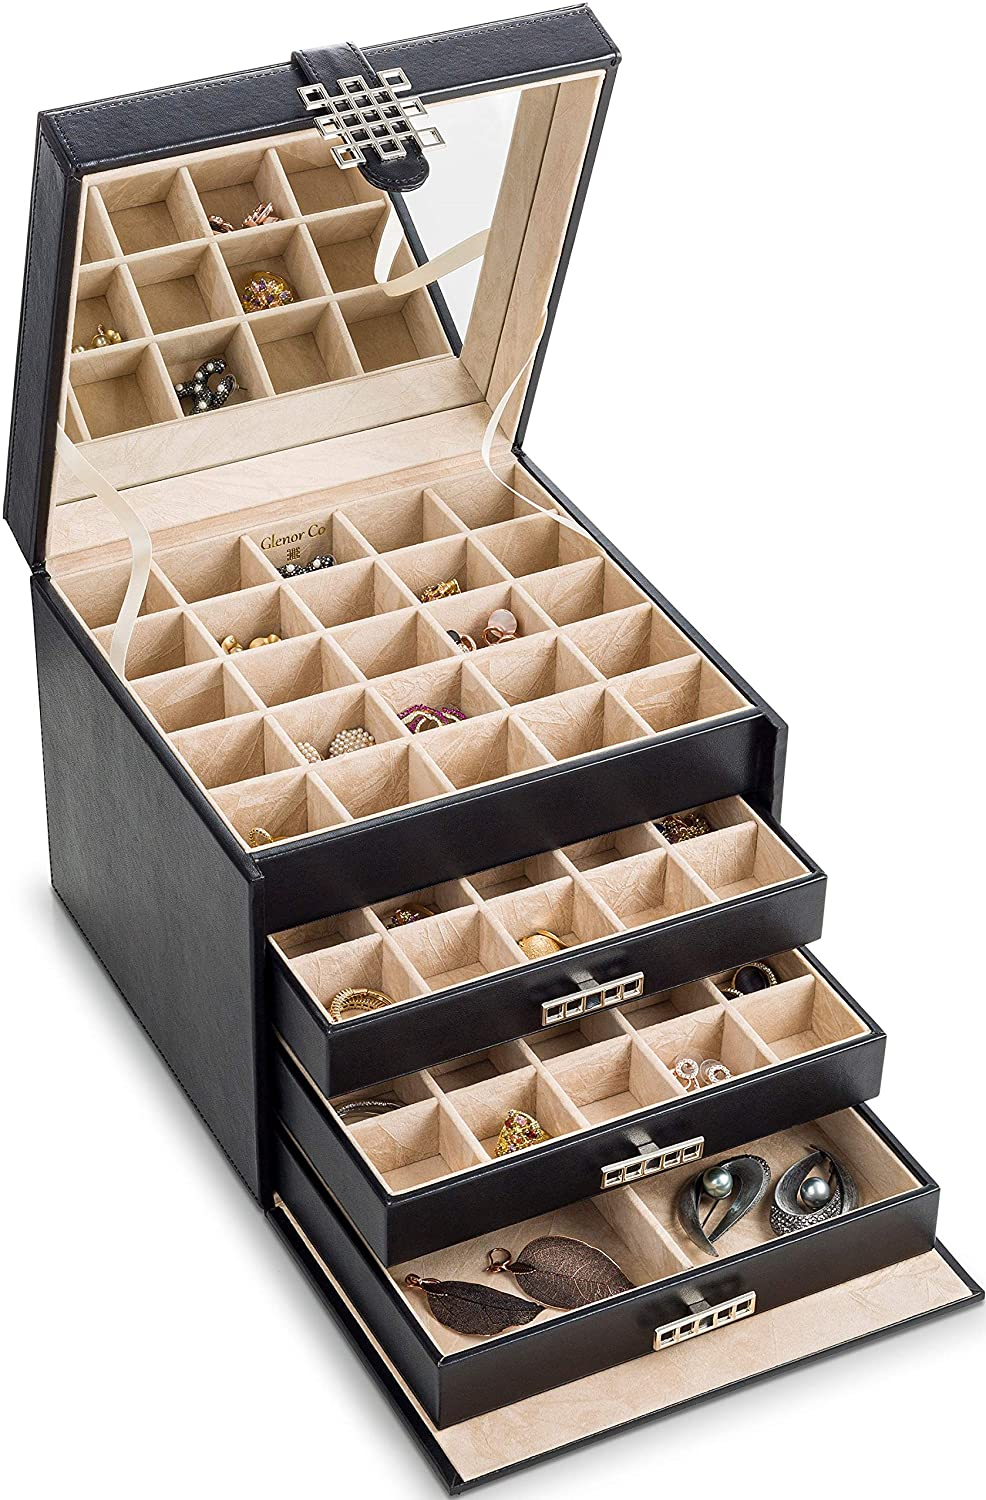 Glenor Co Earring Organizer Holder - 75 Small & 4 Large Slots Classic Jewelry Box with Drawer & Modern Closure, Mirror, 4 Trays Earrings, Ring or Chain Storage - PU Leather Case - Black